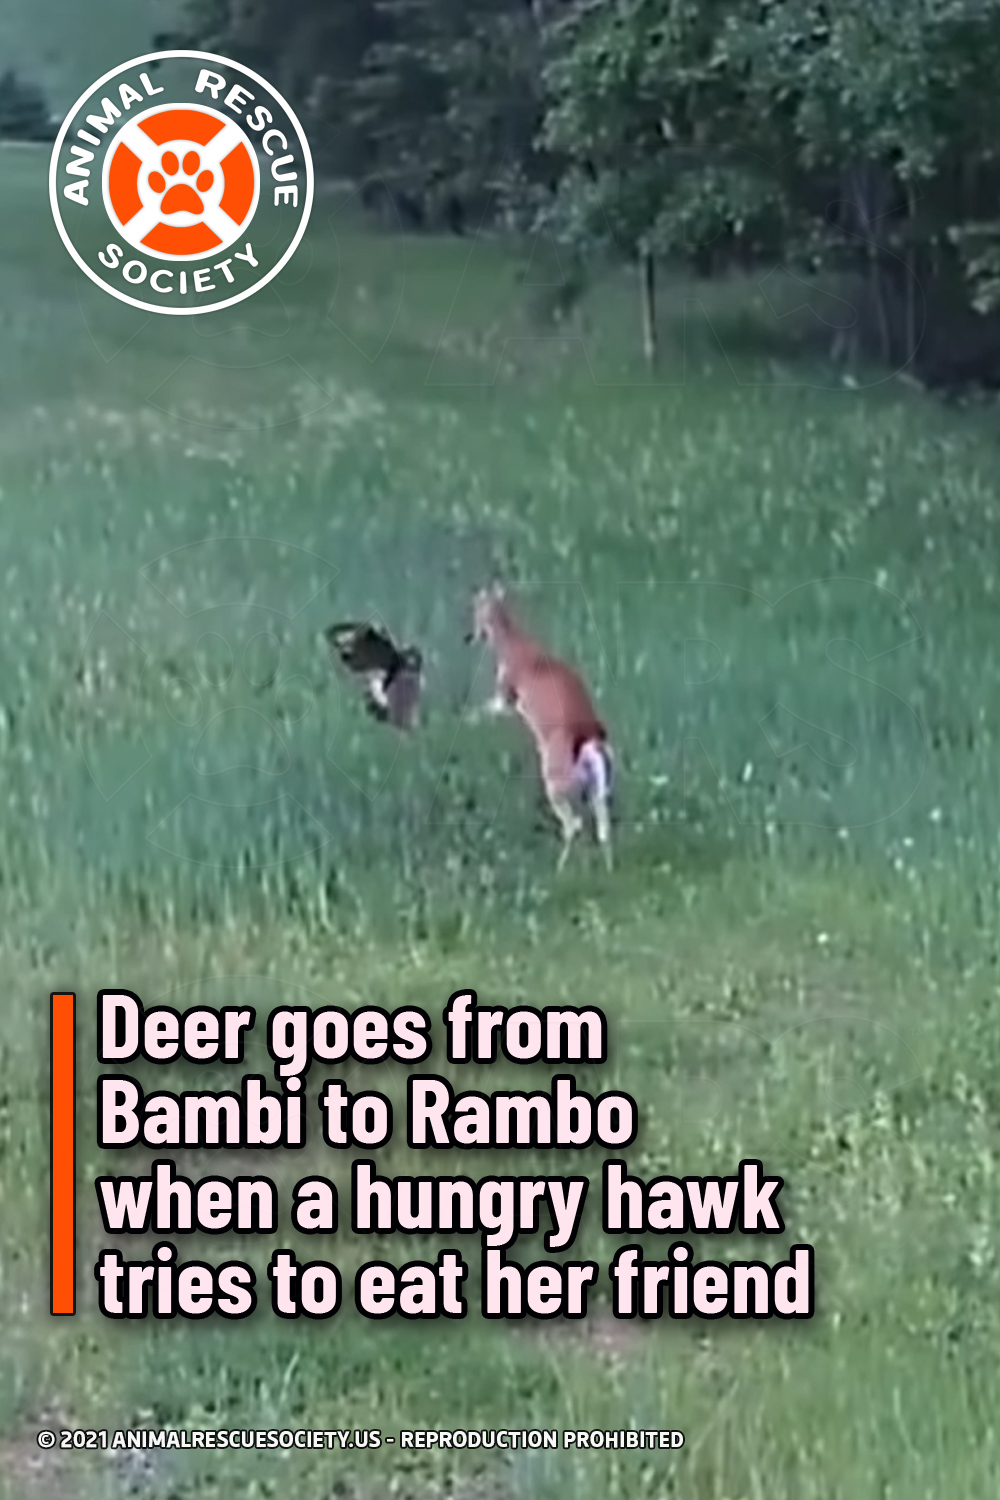 Deer goes from Bambi to Rambo when a hungry hawk tries to eat her friend